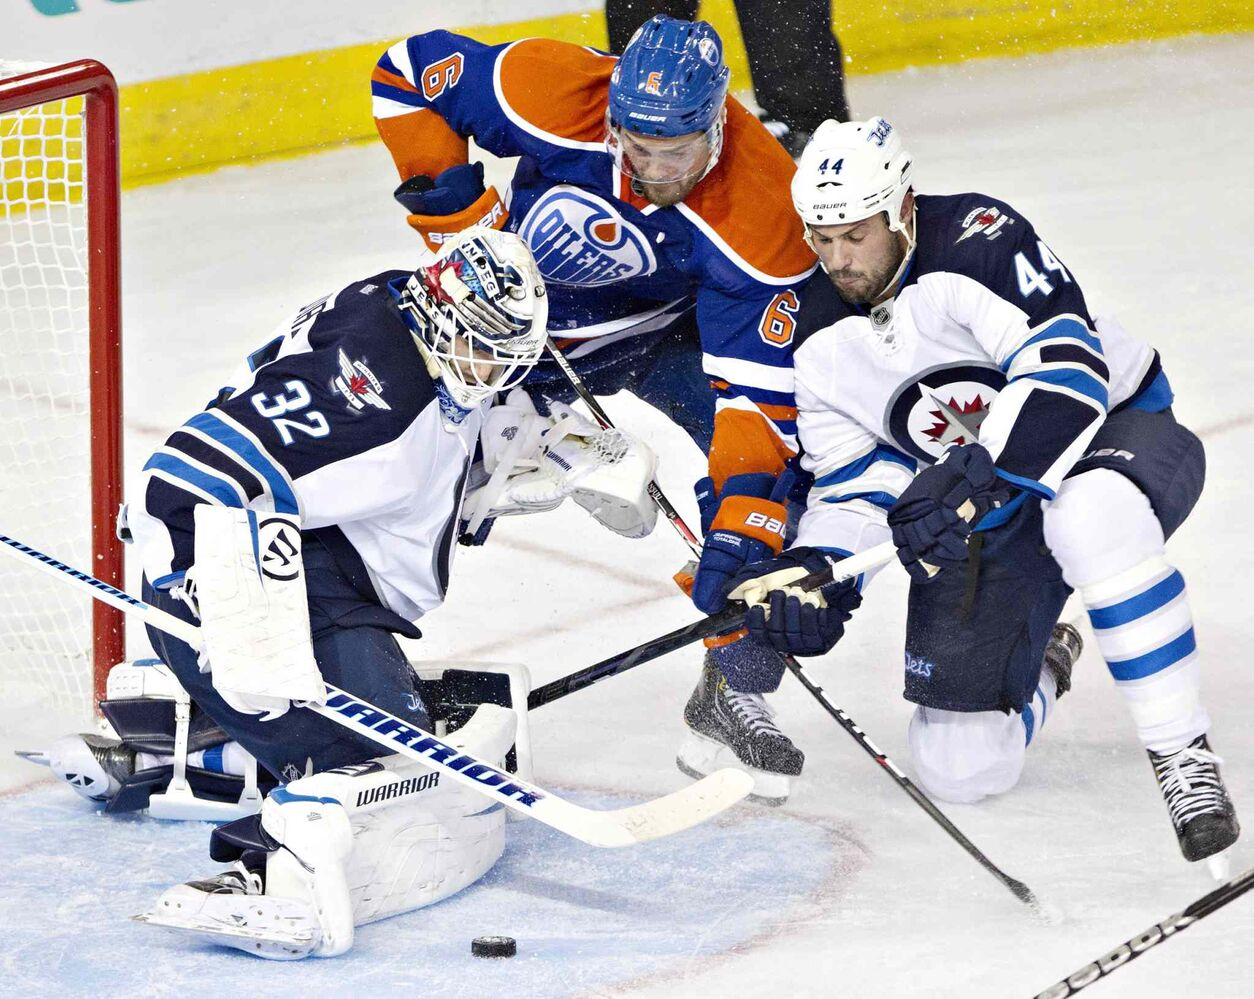 Winnipeg Jets goalie Edward Pasquale (32) makes a save as Zach Bogosian (44) and Edmonton Oilers Jesse Joensuu (6) battle for the rebound during the third period. (Jason Franson / The Canadian Press)